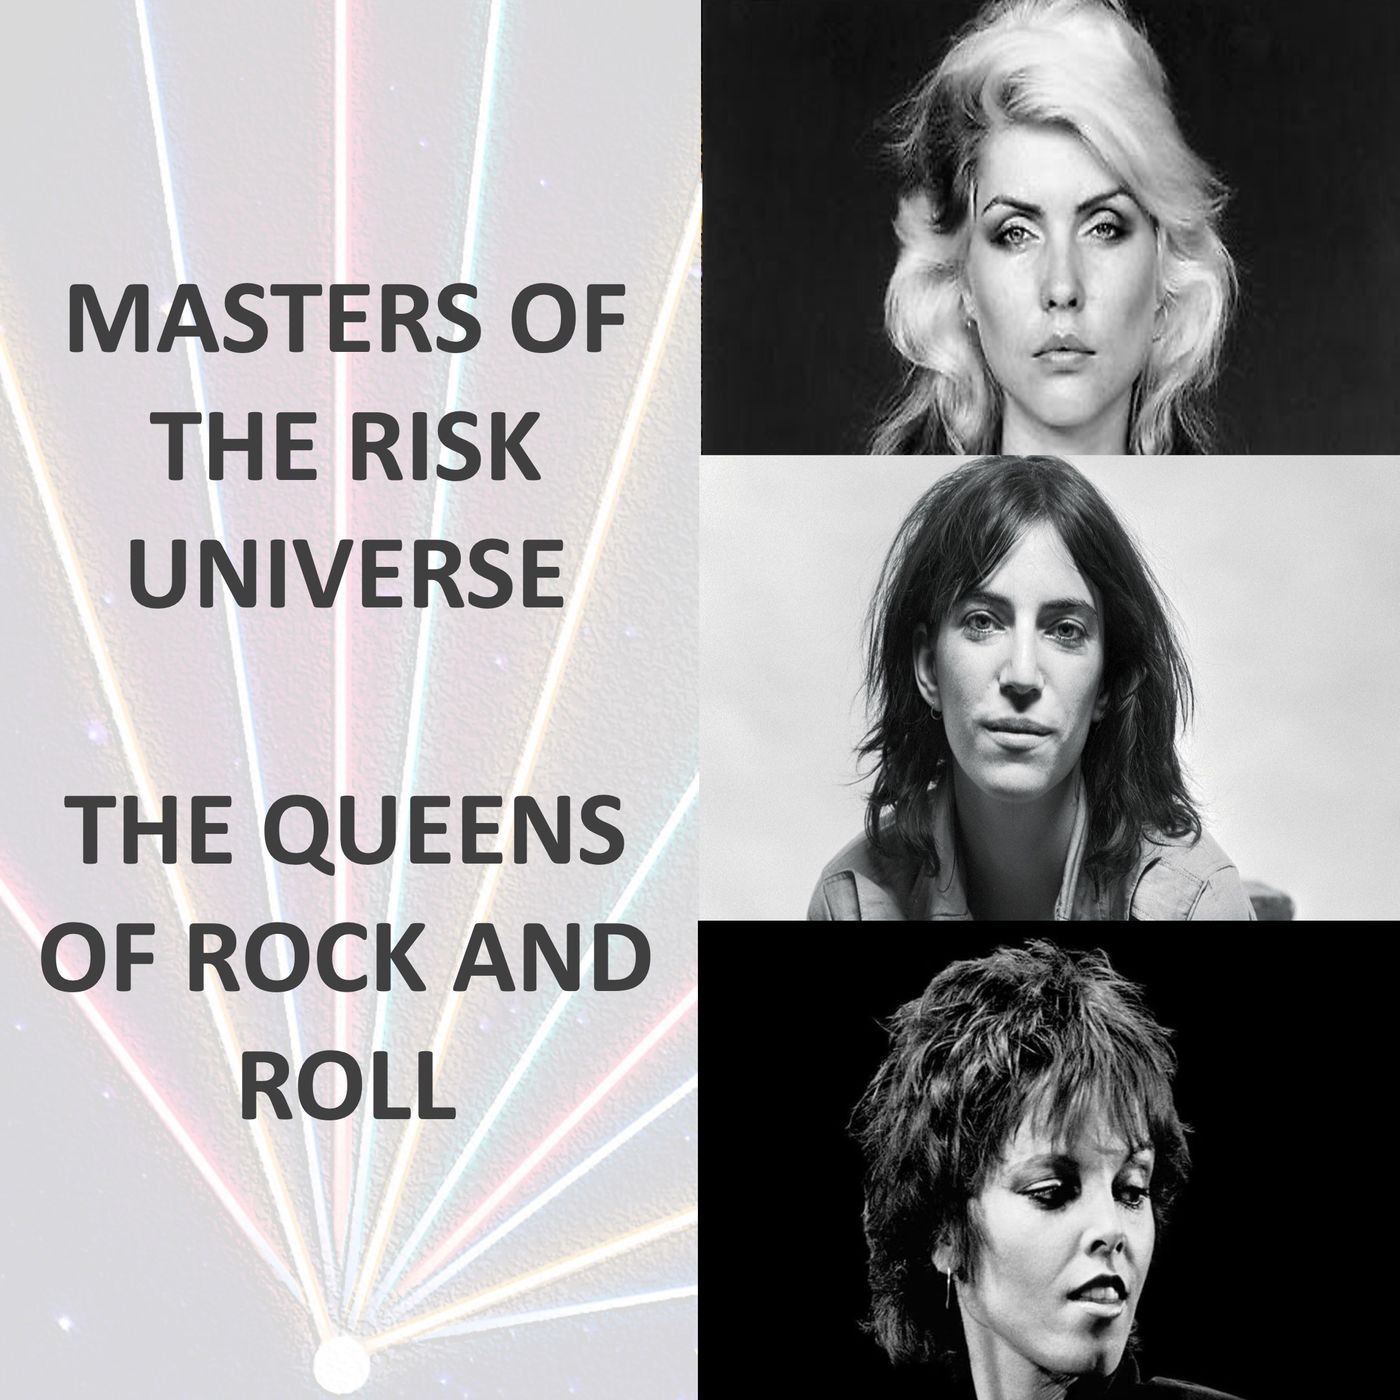 Masters of the Risk Universe... The Queens of Rock and Roll